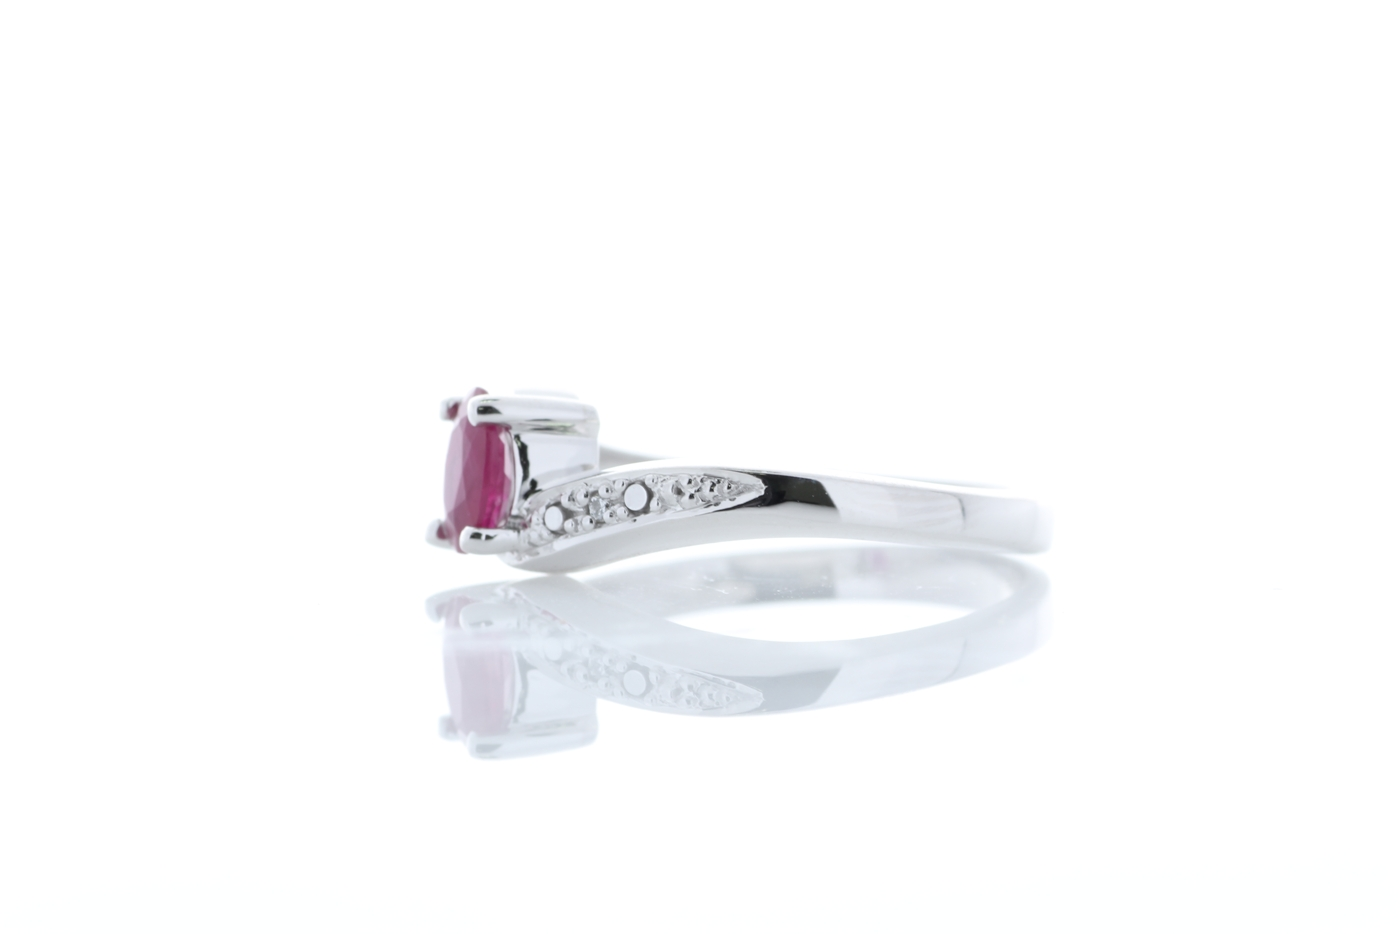 Lot 52 - 9ct White Gold Diamond And Ruby Ring 0.01 Carats